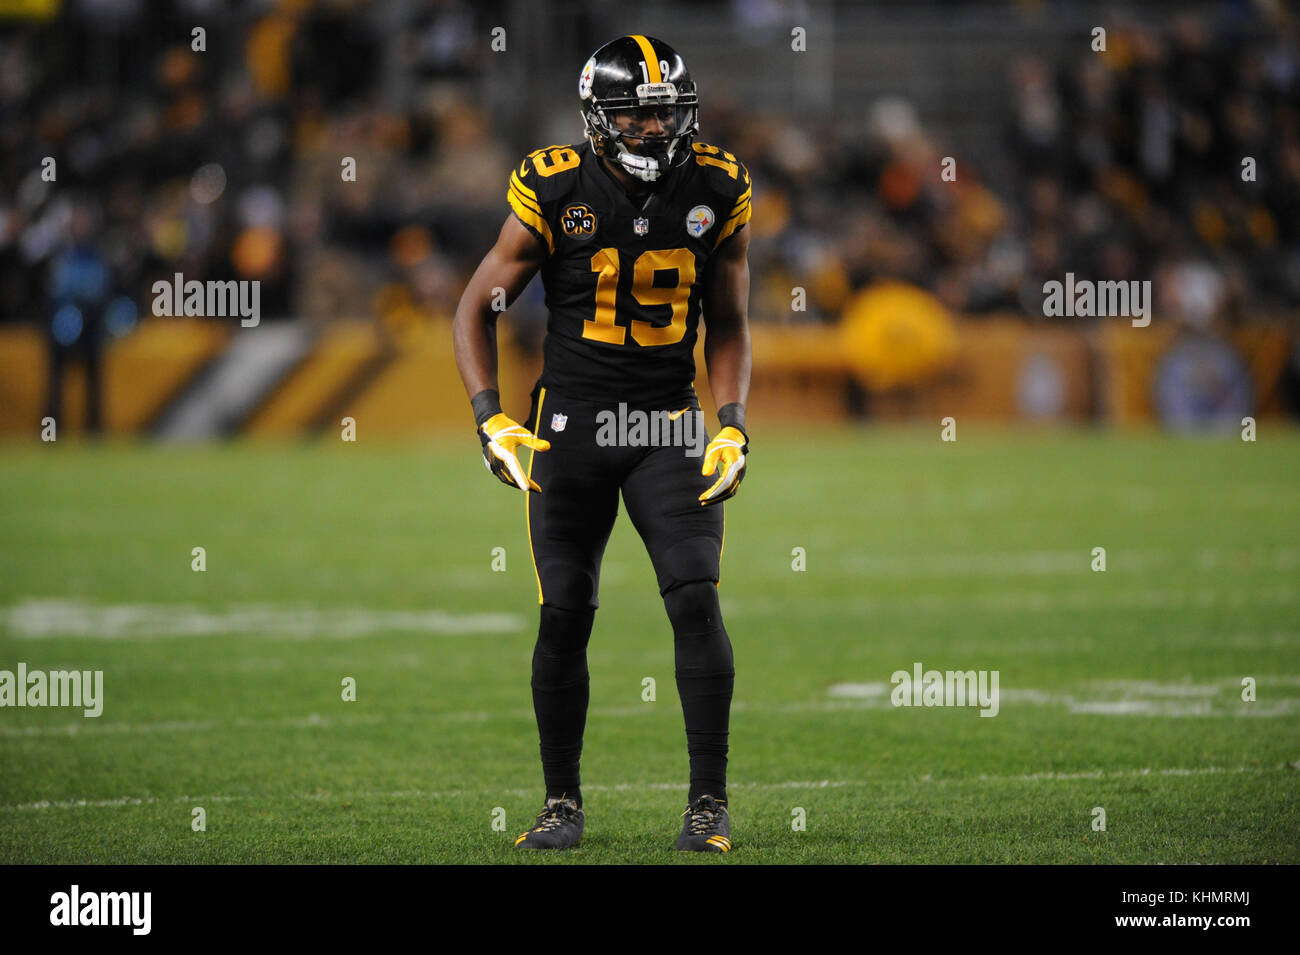 Juju Smith Schuster >> Juju Smith Schuster Stock Photos & Juju Smith Schuster Stock Images - Alamy